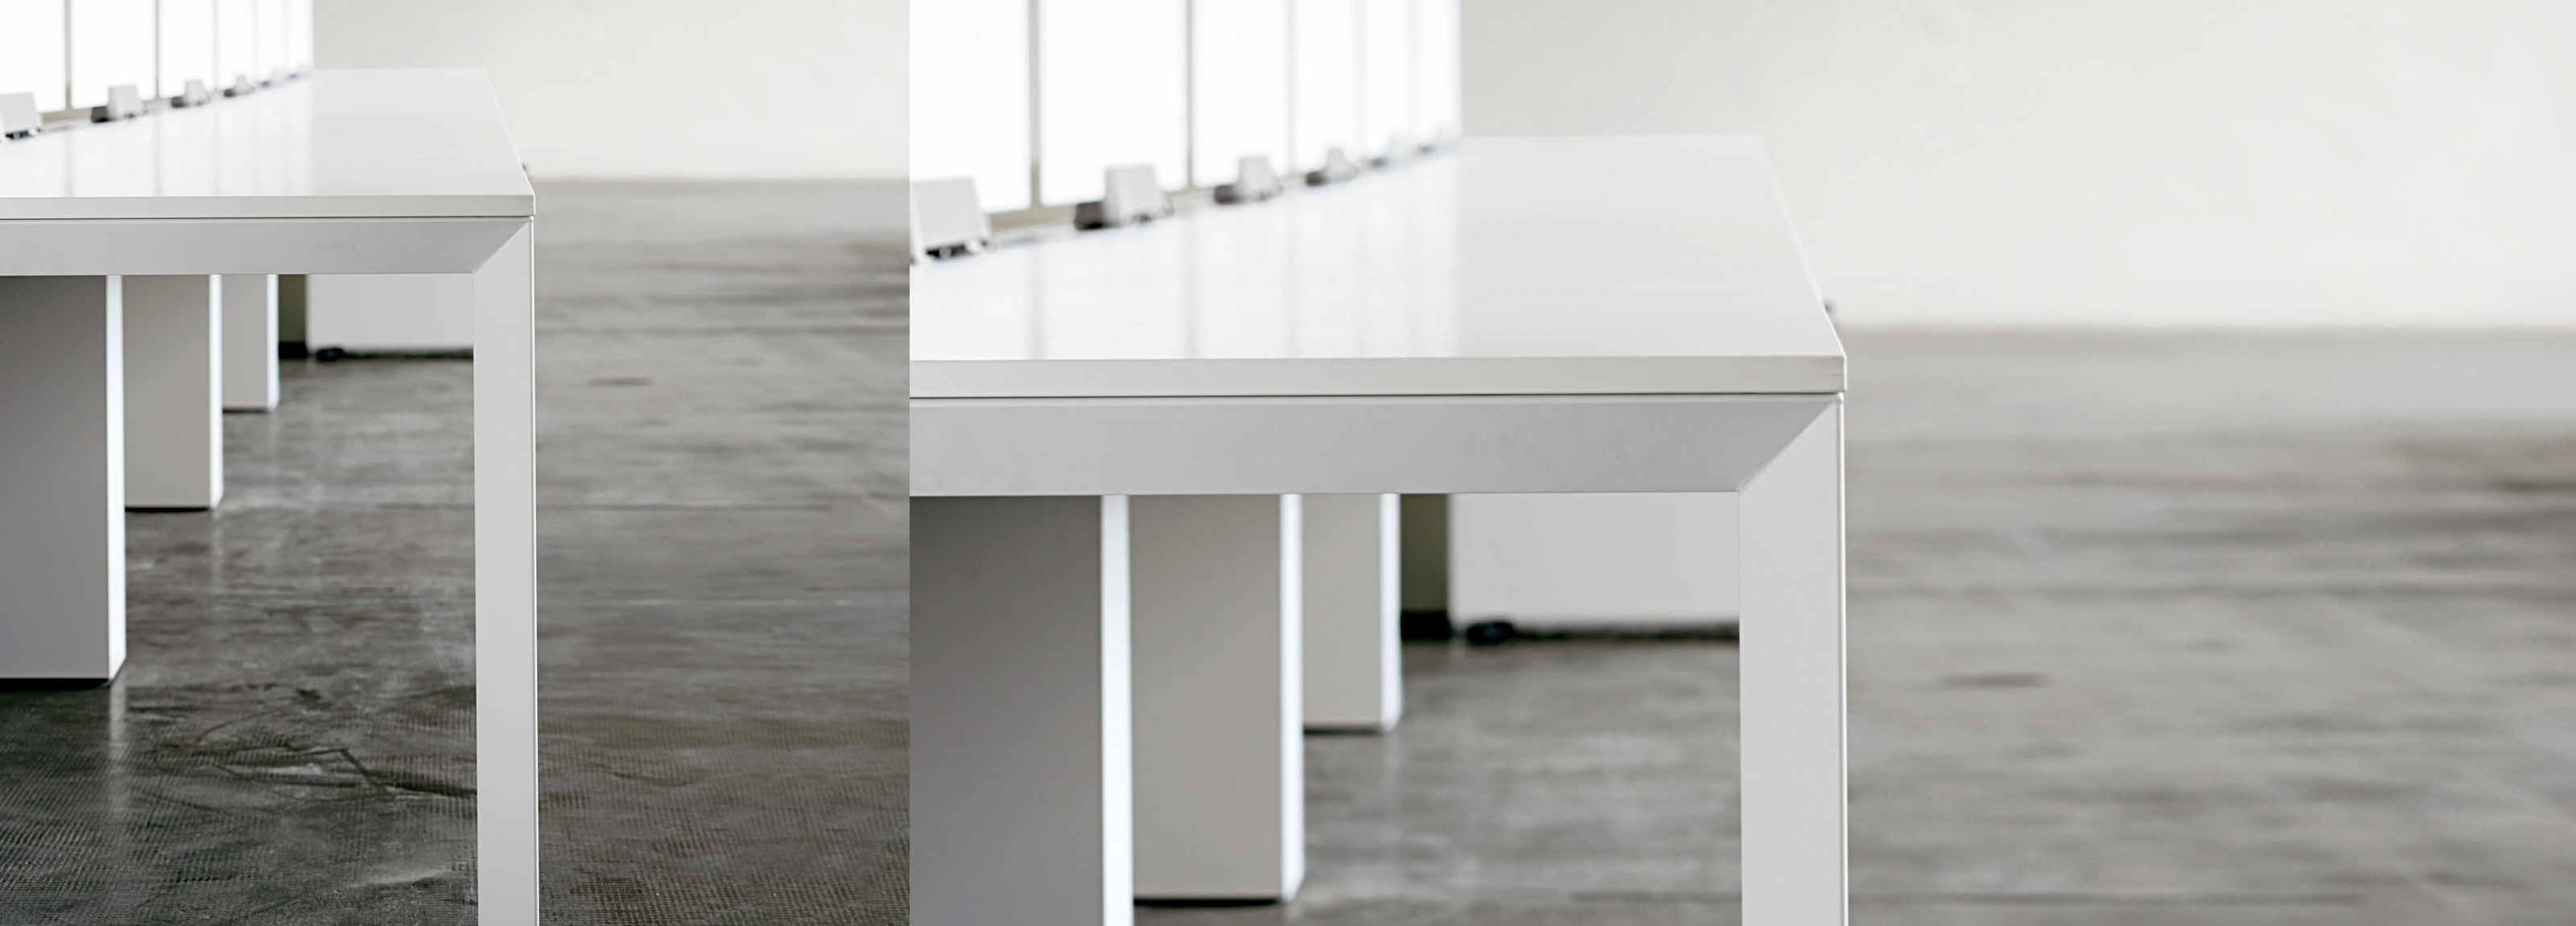 An office table designed of Hangar Design Group with an elegant and minimal design.